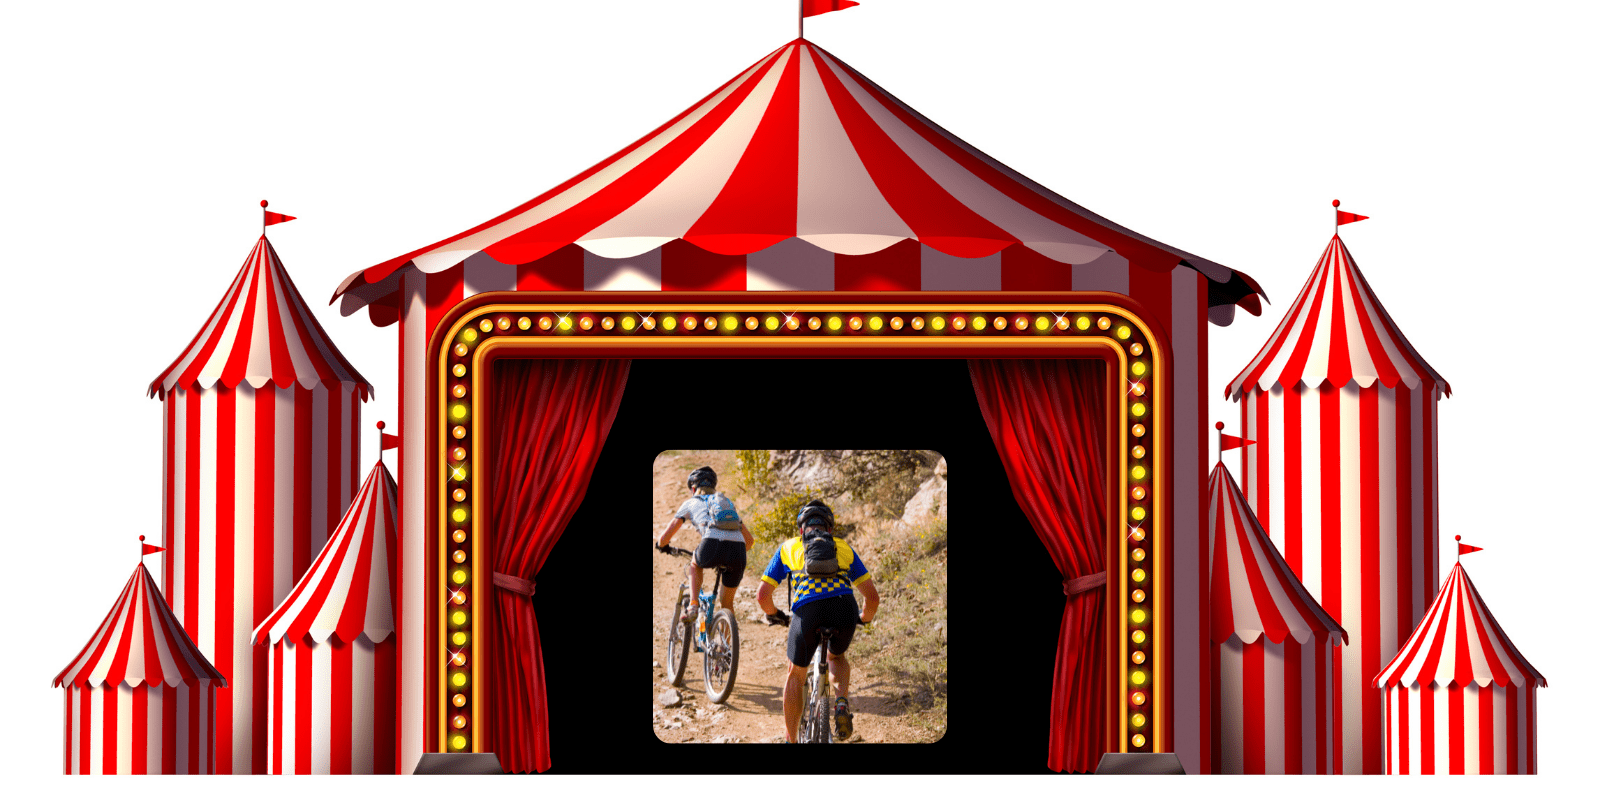 Off to the Circus Social MTB Ride